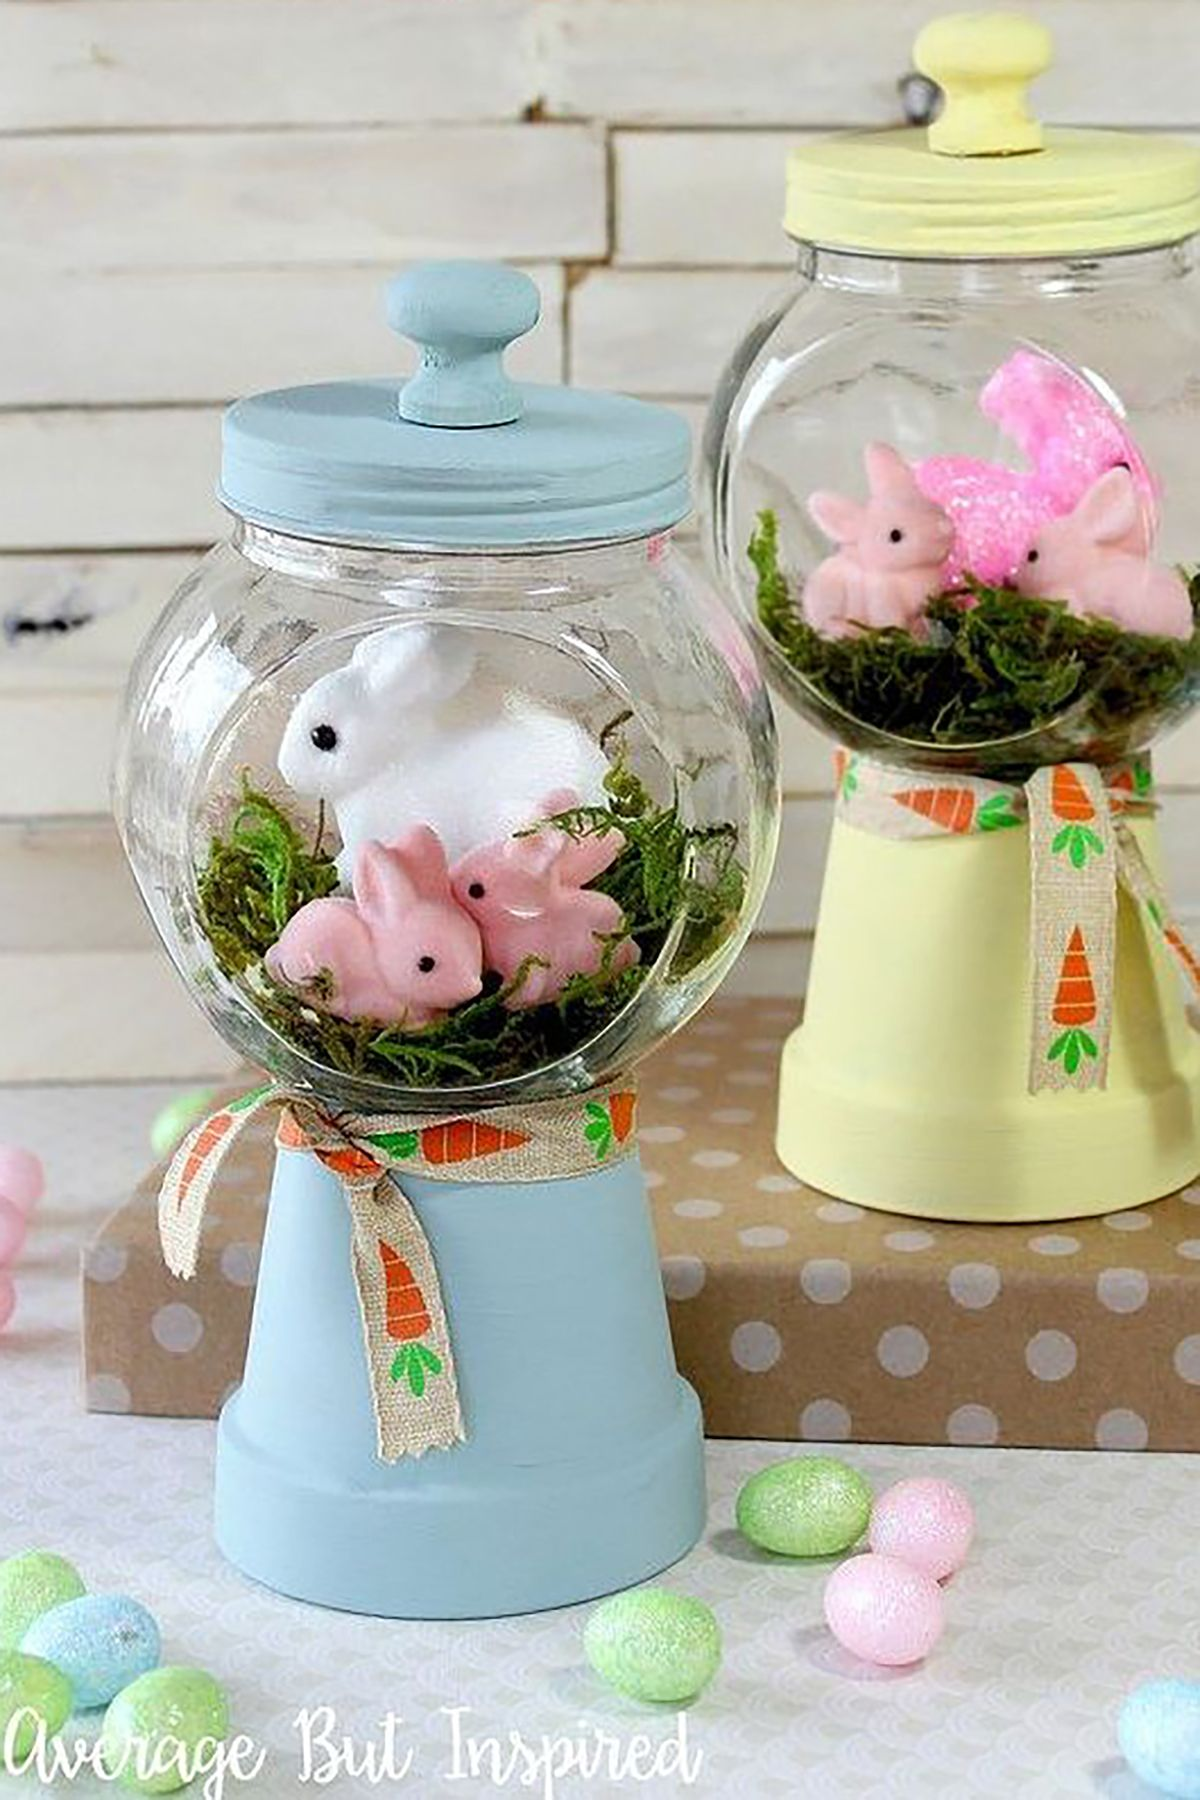 46 easy easter crafts ideas for easter diy decorations gifts 46 easy easter crafts ideas for easter diy decorations gifts country living negle Images